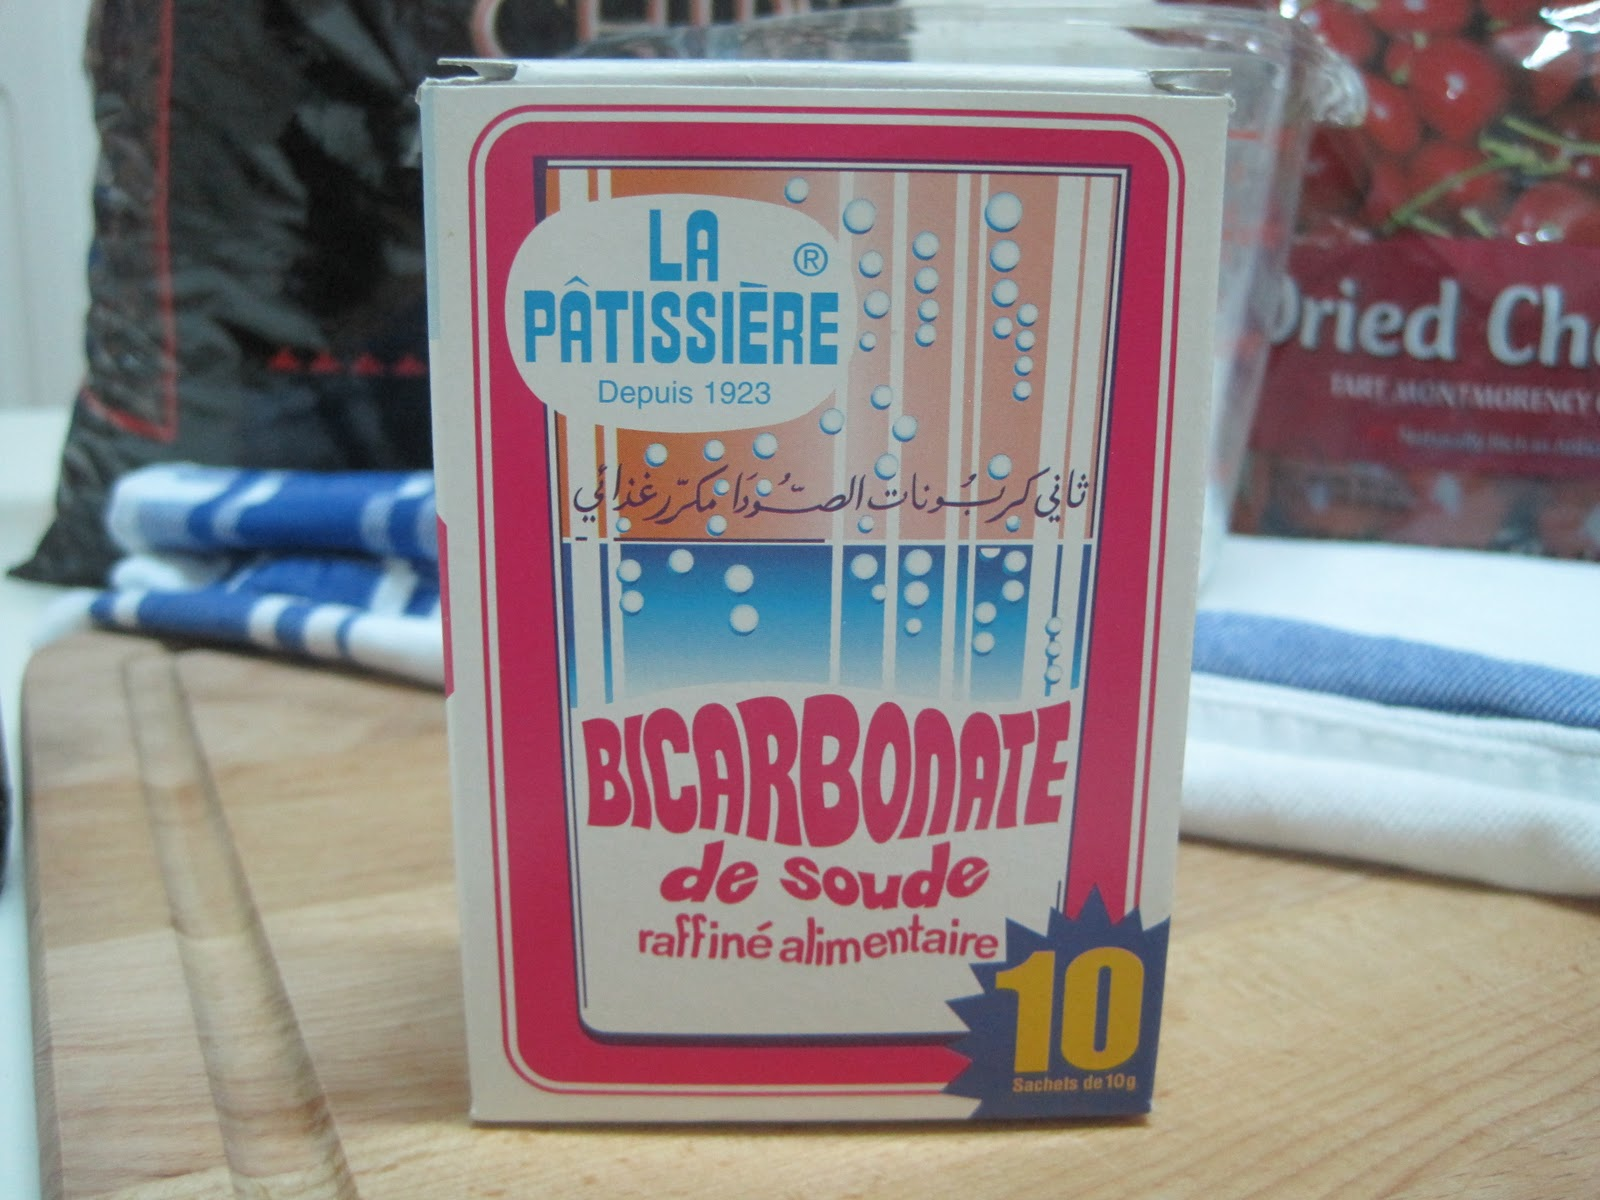 Bicarbonate de Soude (Baking Soda)